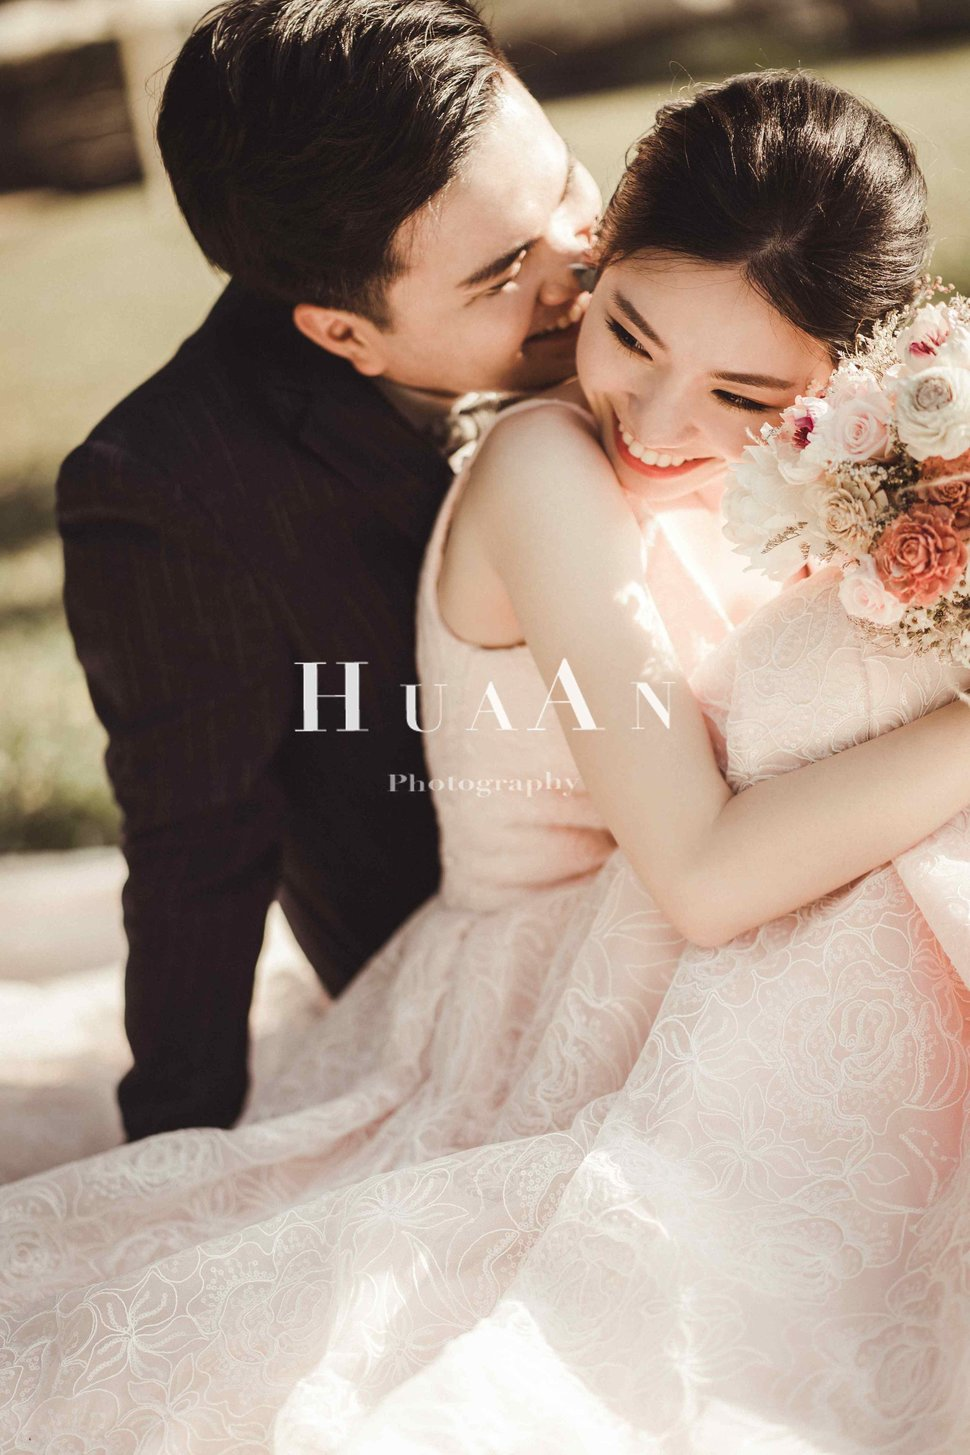 DSC05000 - Huaan Photography《結婚吧》